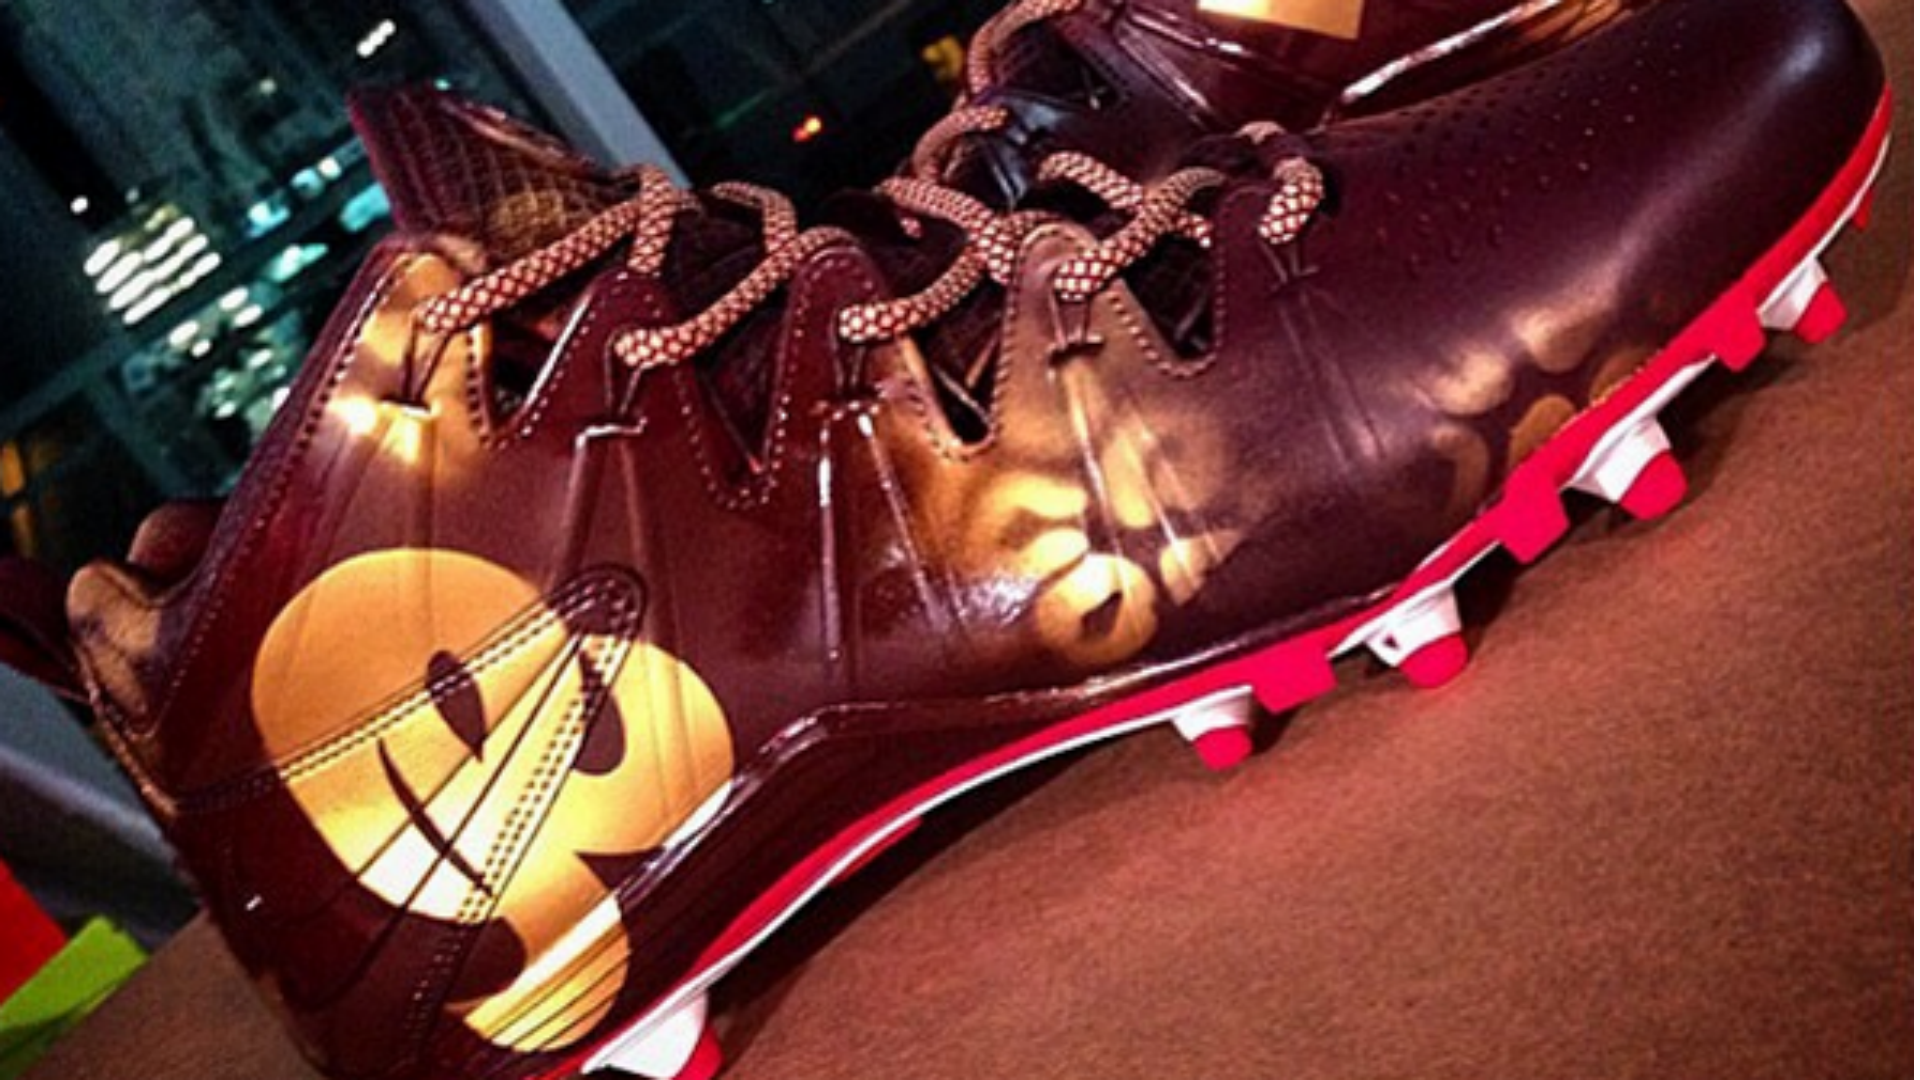 redskins-cleat-111314-ftr-instagram.png